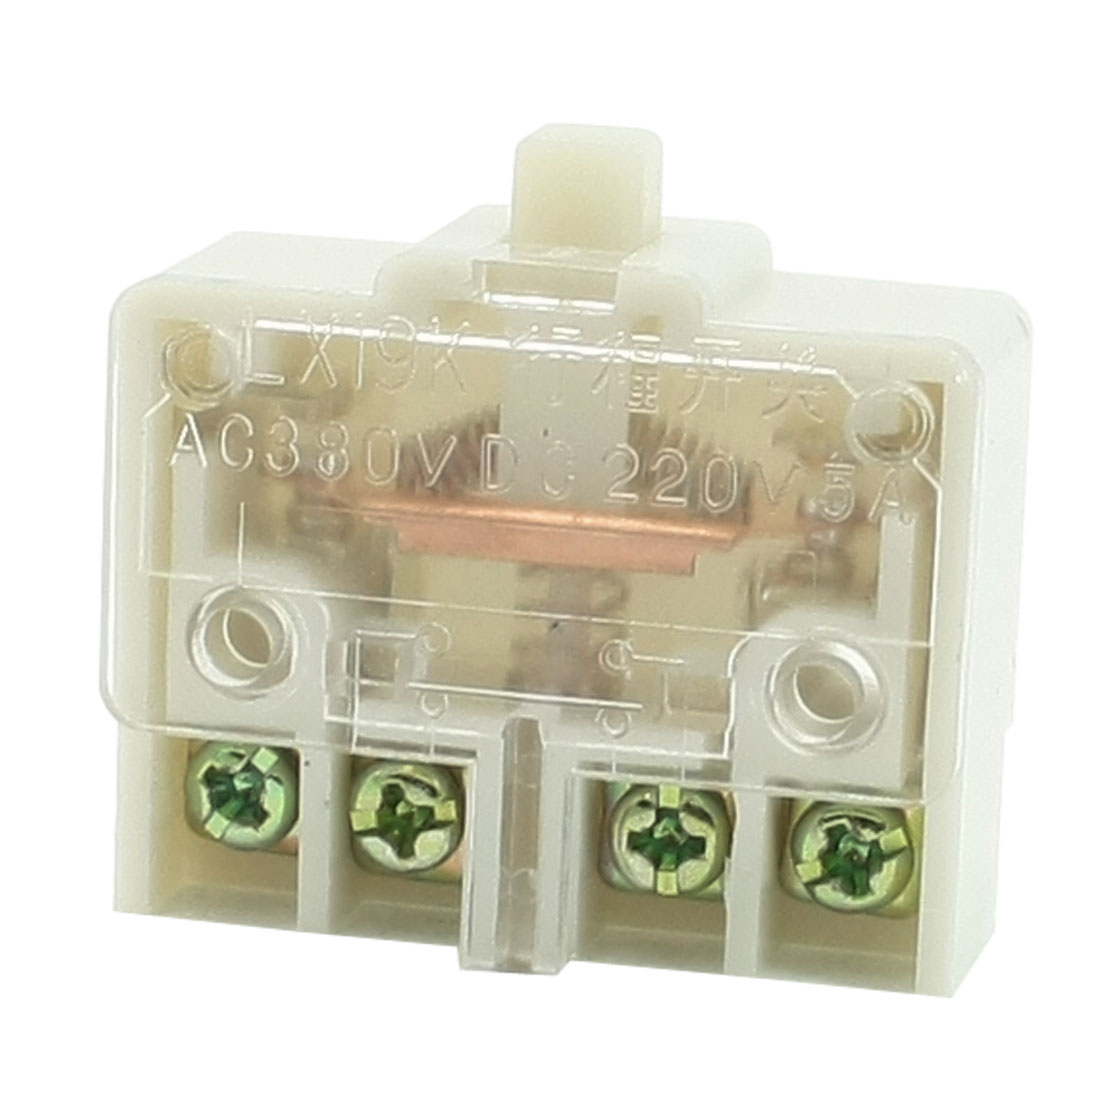 DPST Button Actuator Clear Shell Limit Switch AC/380V DC/220V 5A